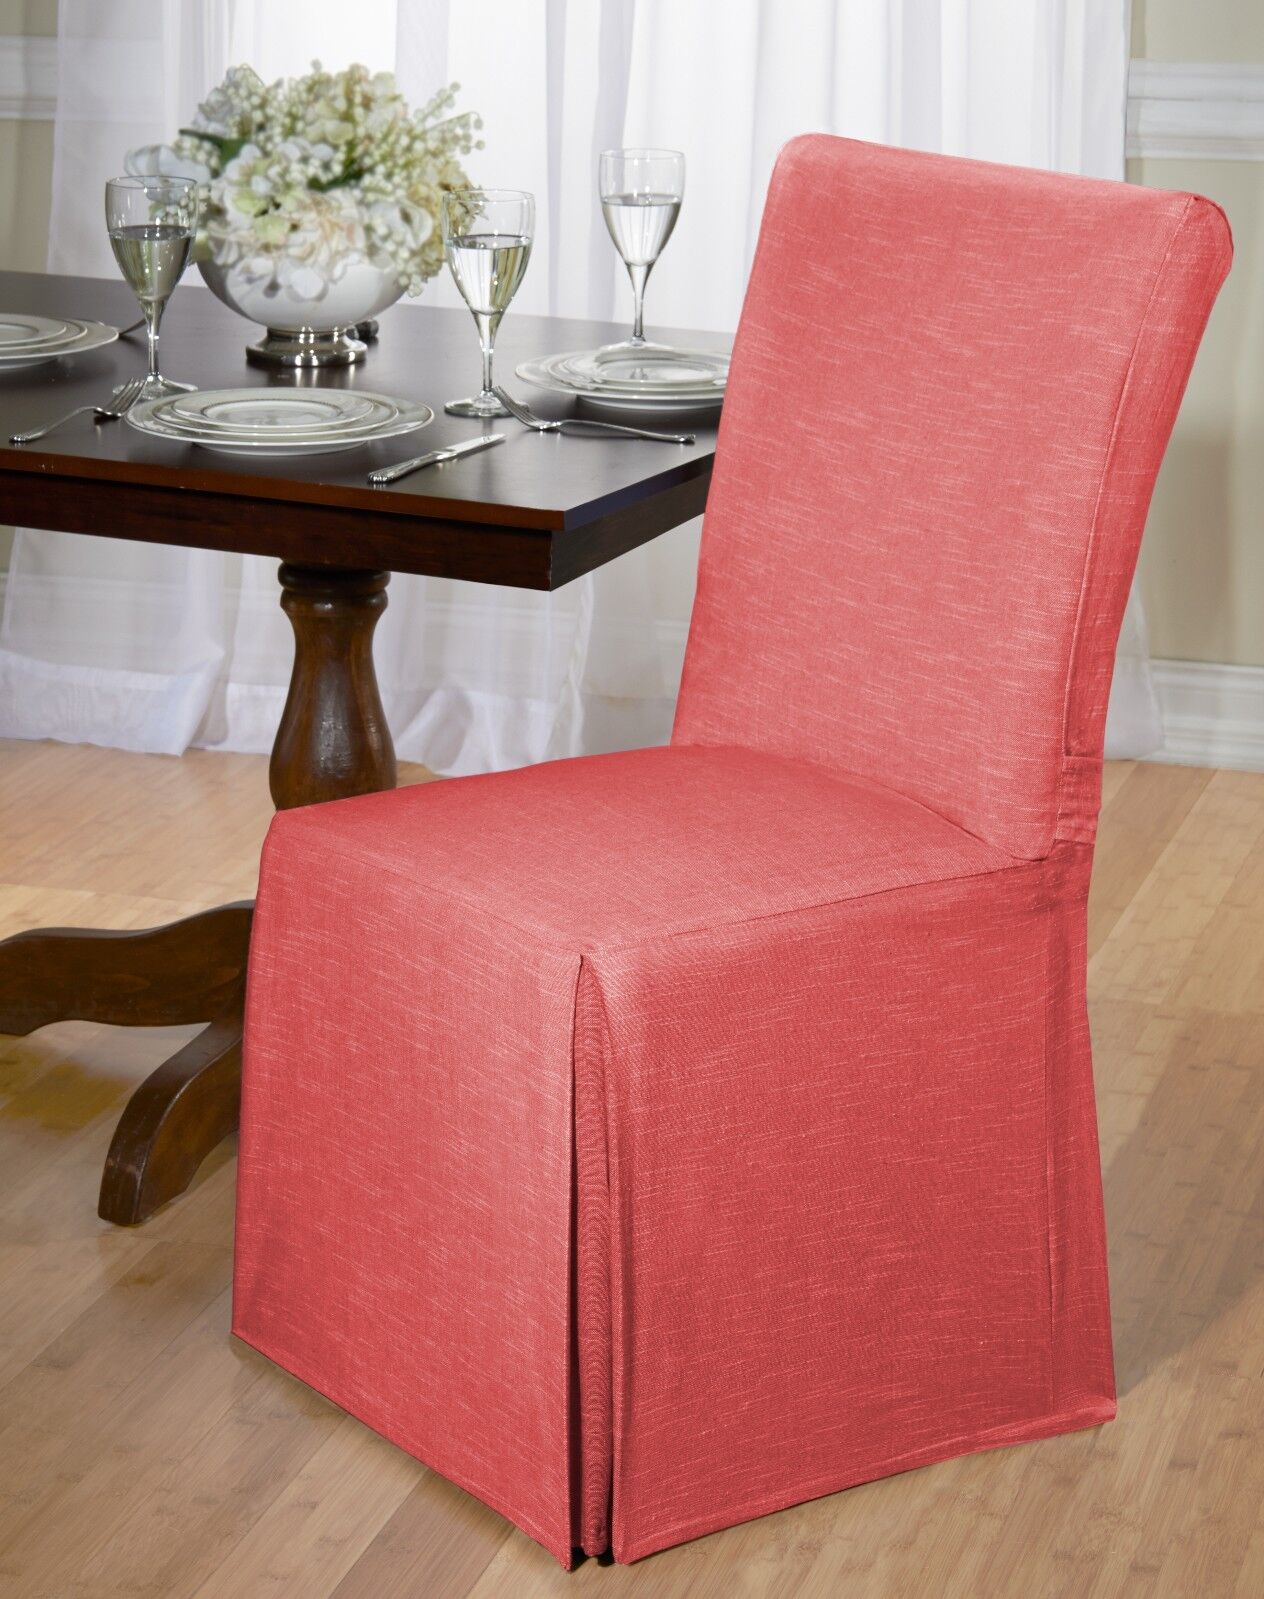 chair back covers for dining room chairs swivel leather luxurious cotton cover chambray tie